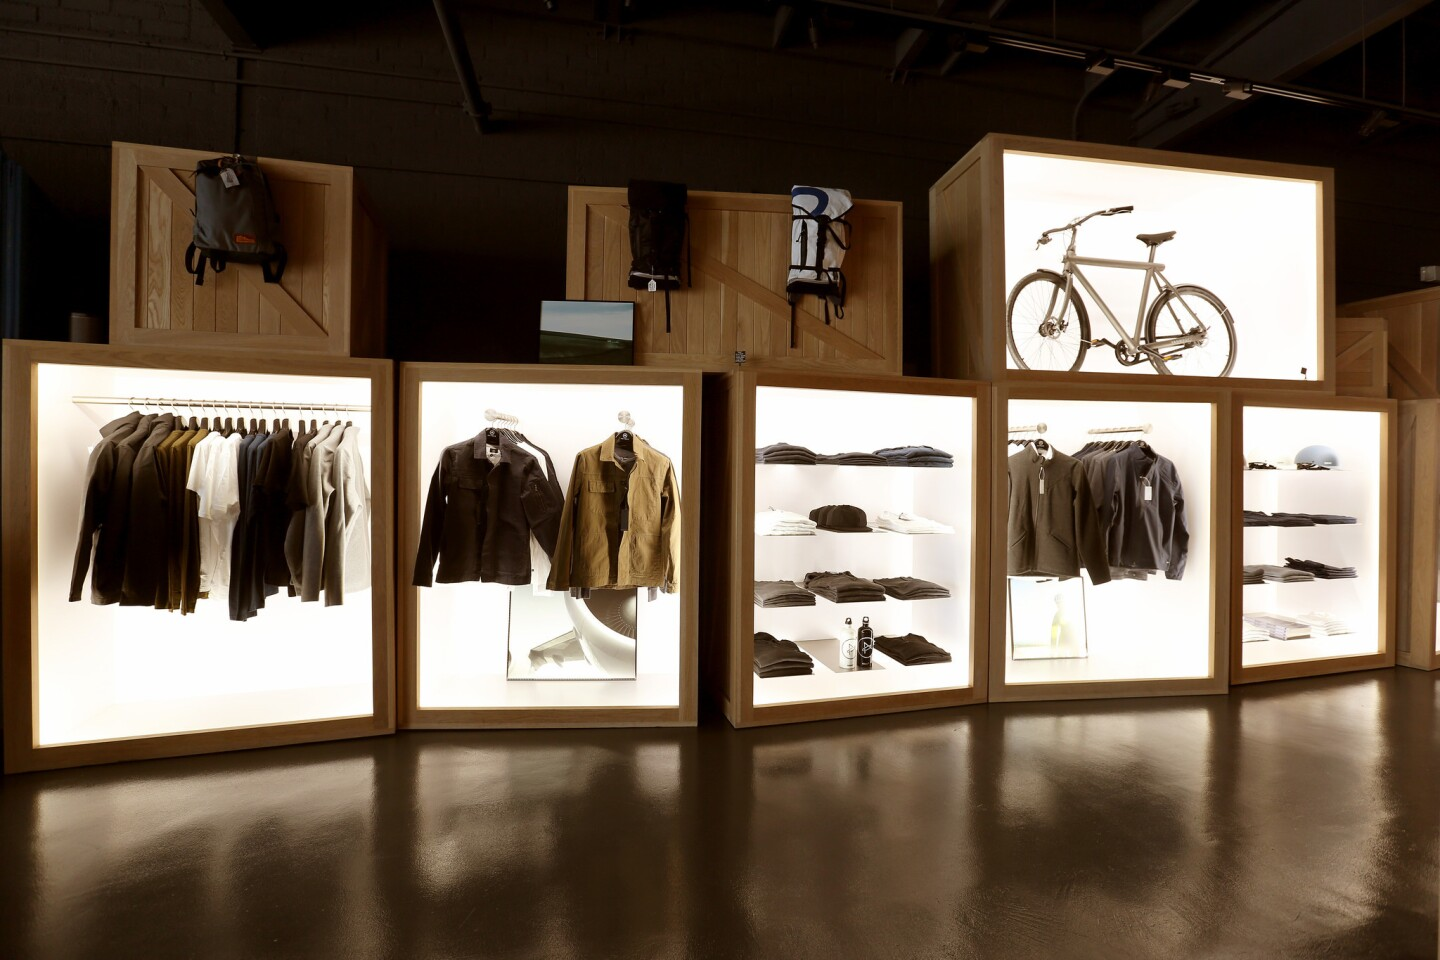 Luxury performance wear as fashion, Aether is an L.A.-based brand founded in 2009. We catch up with Jonah Smith and Palmer West to talk about their business at their La Brea Avenue flagship.